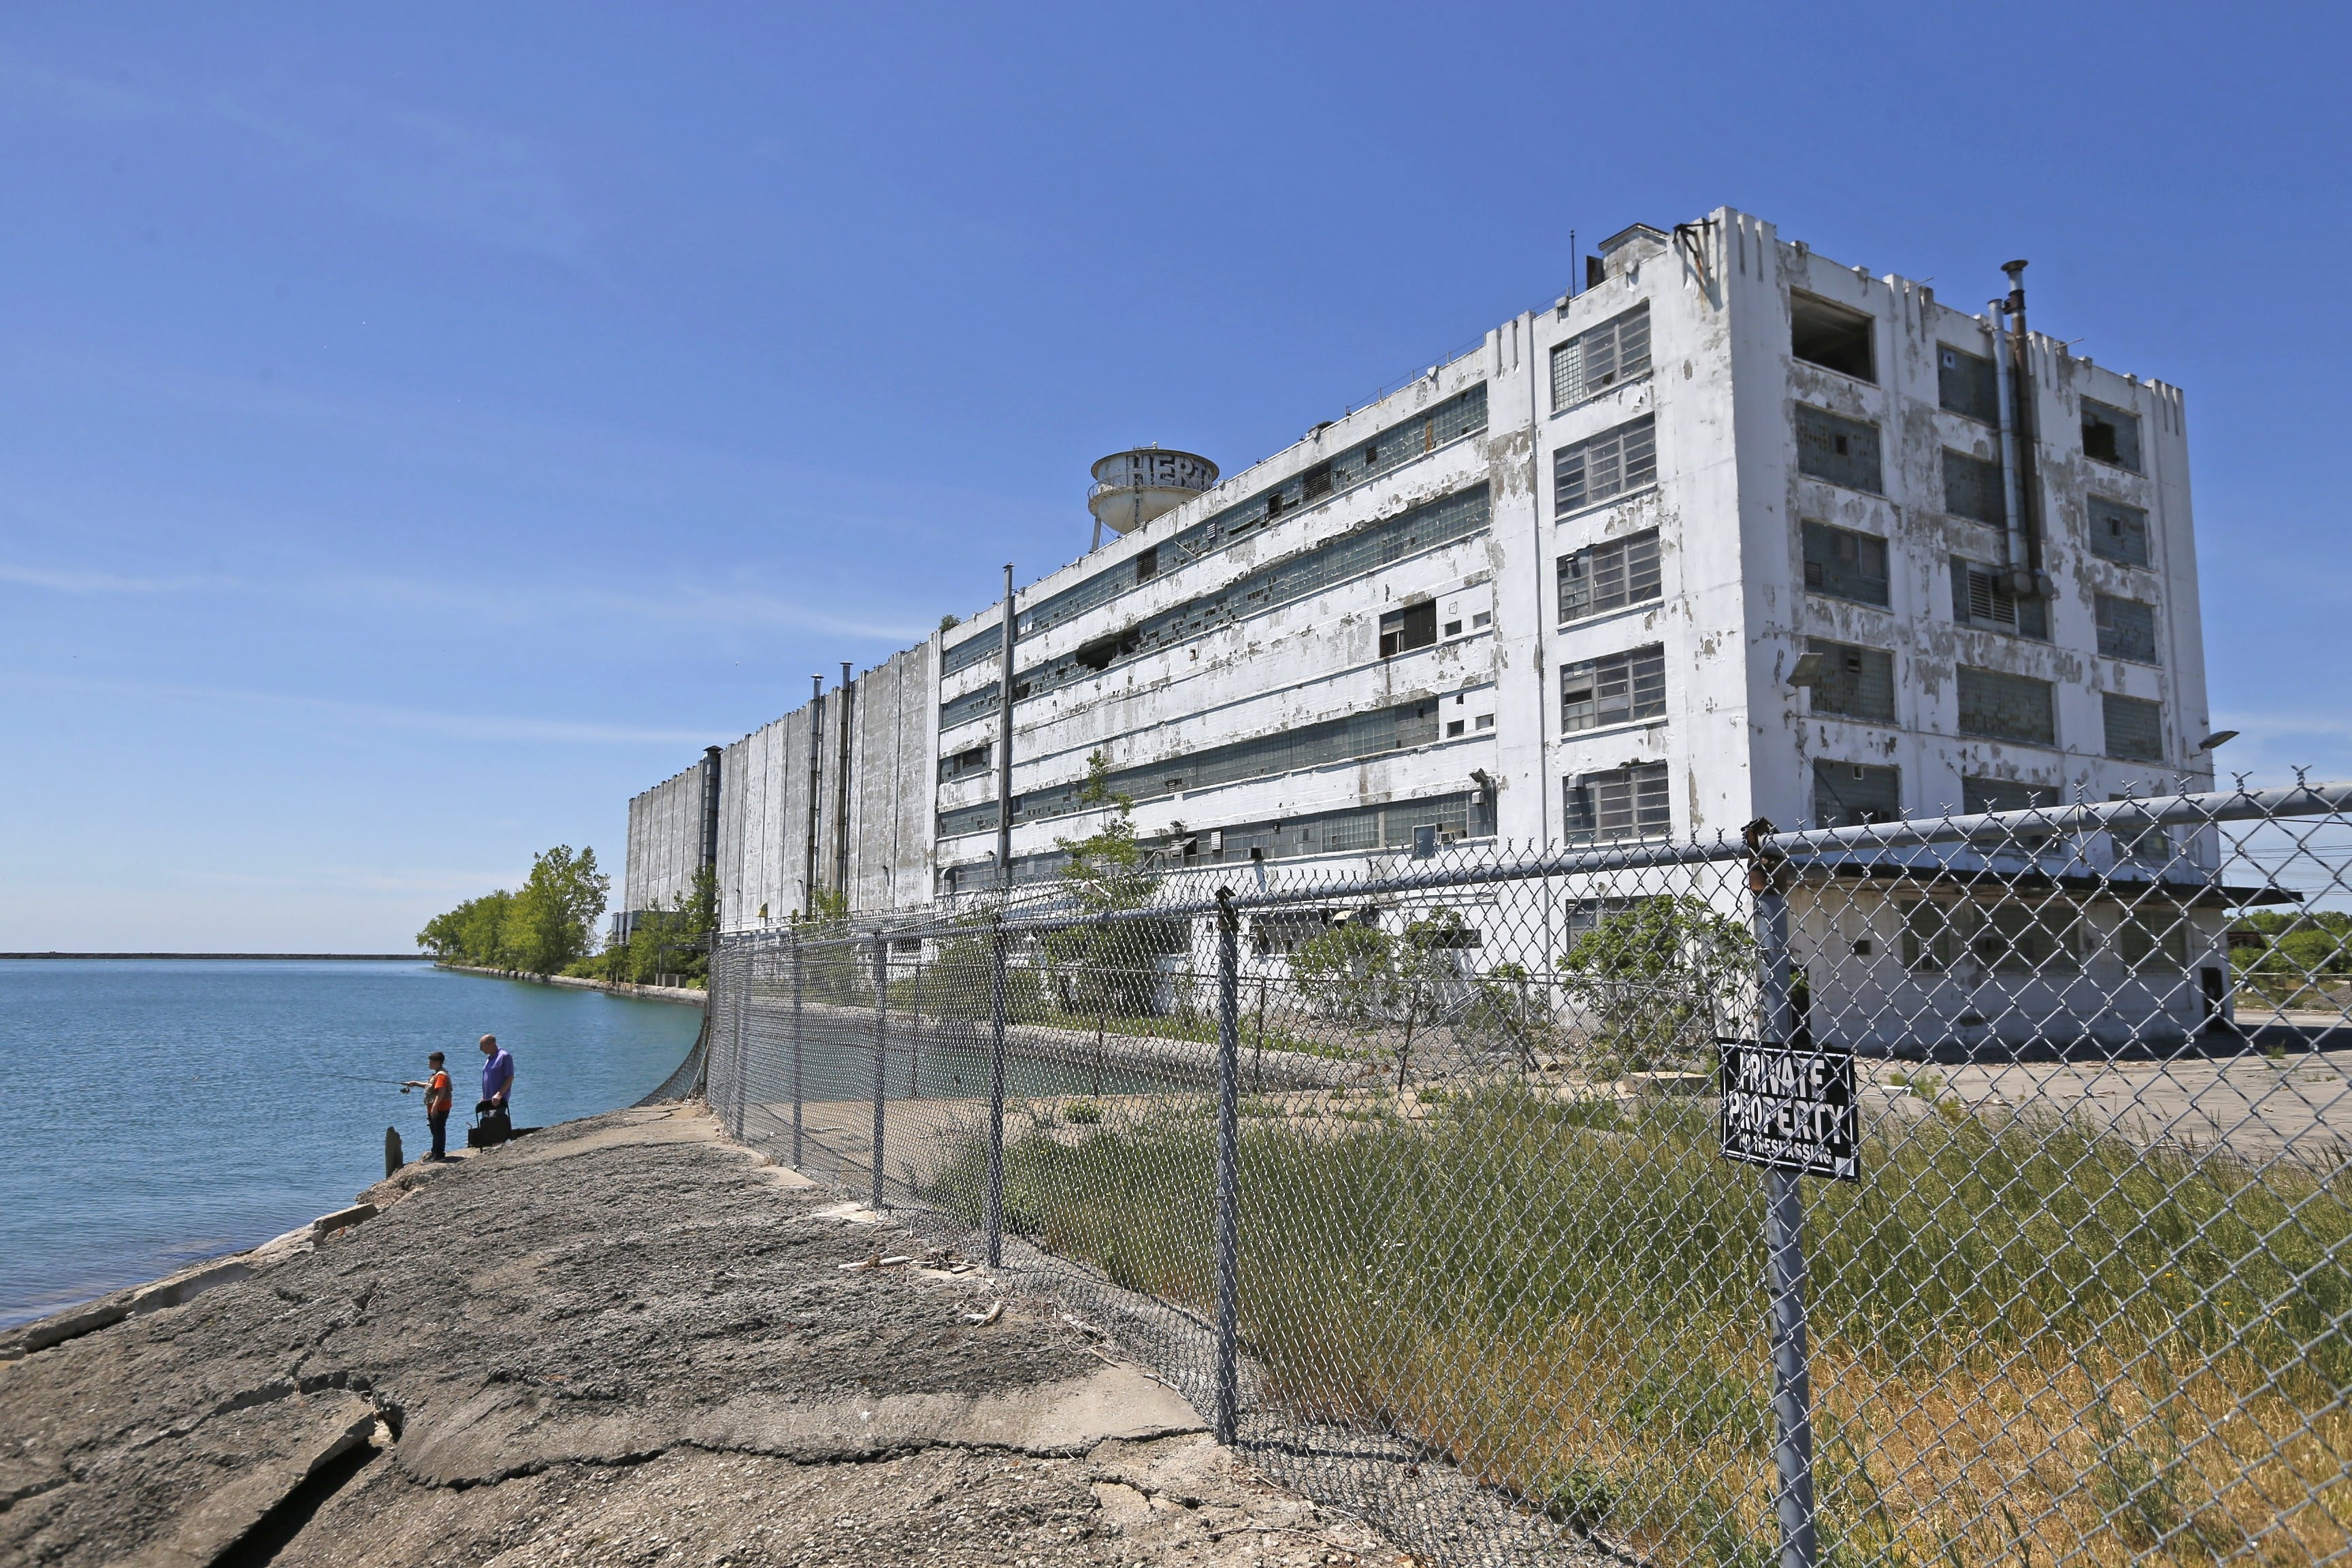 Developer Gerald Buchheit has proposed a 23-story mixed-use building at the old Freezer Queen site.